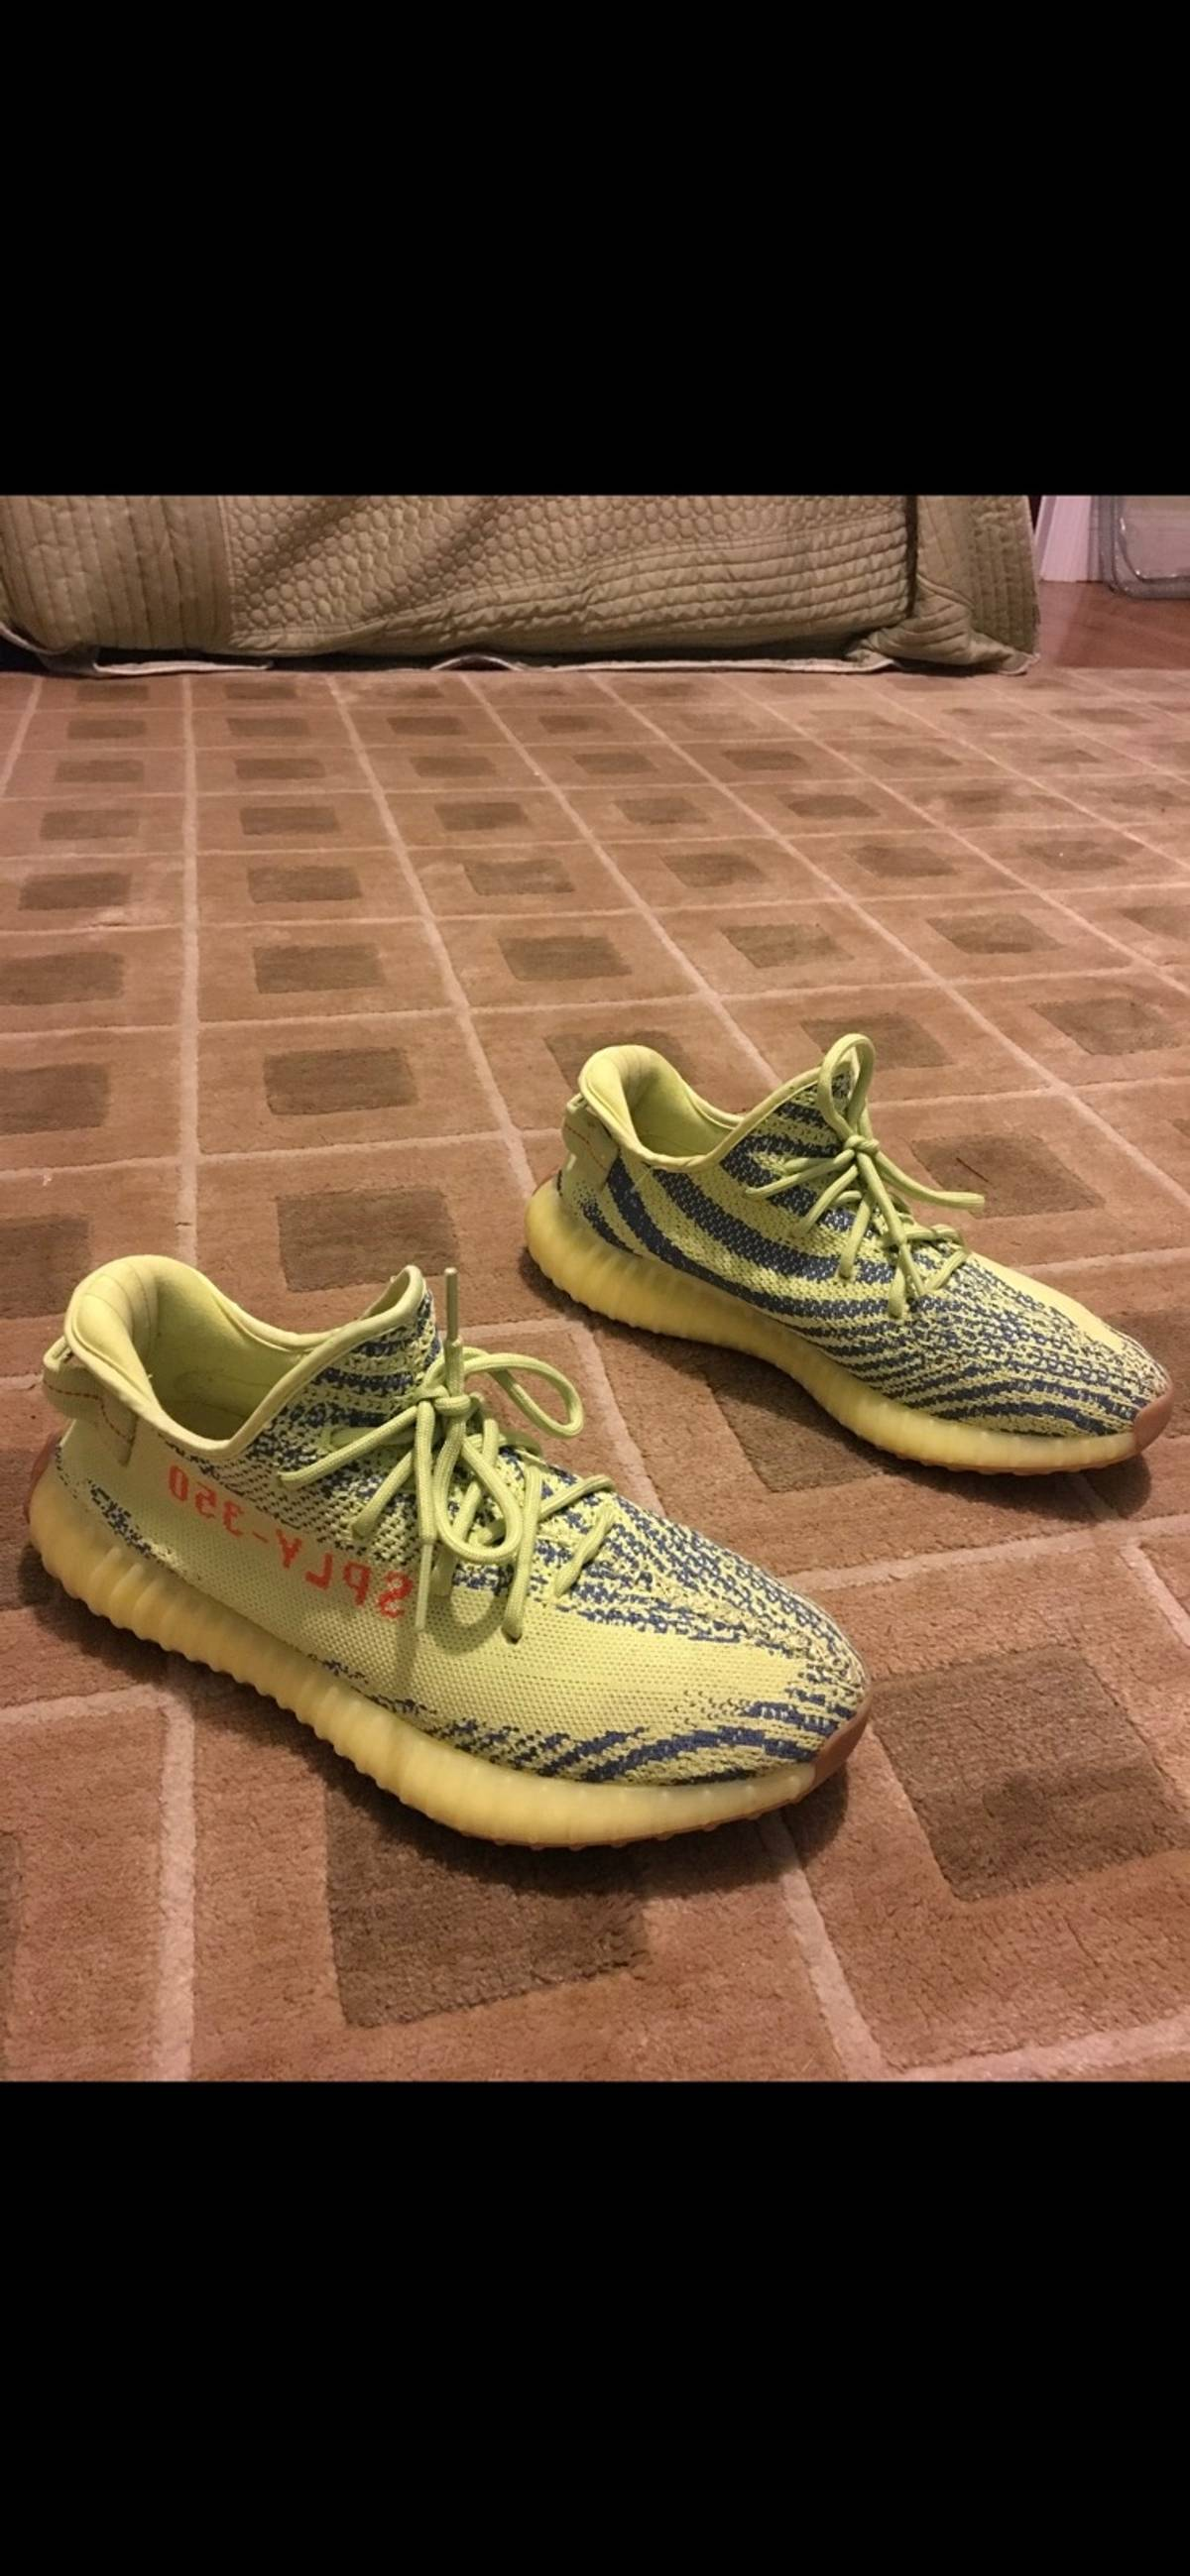 best website 72cc2 491d6 Adidas Yeezy Semi Frozen Yellow Size 11 $243